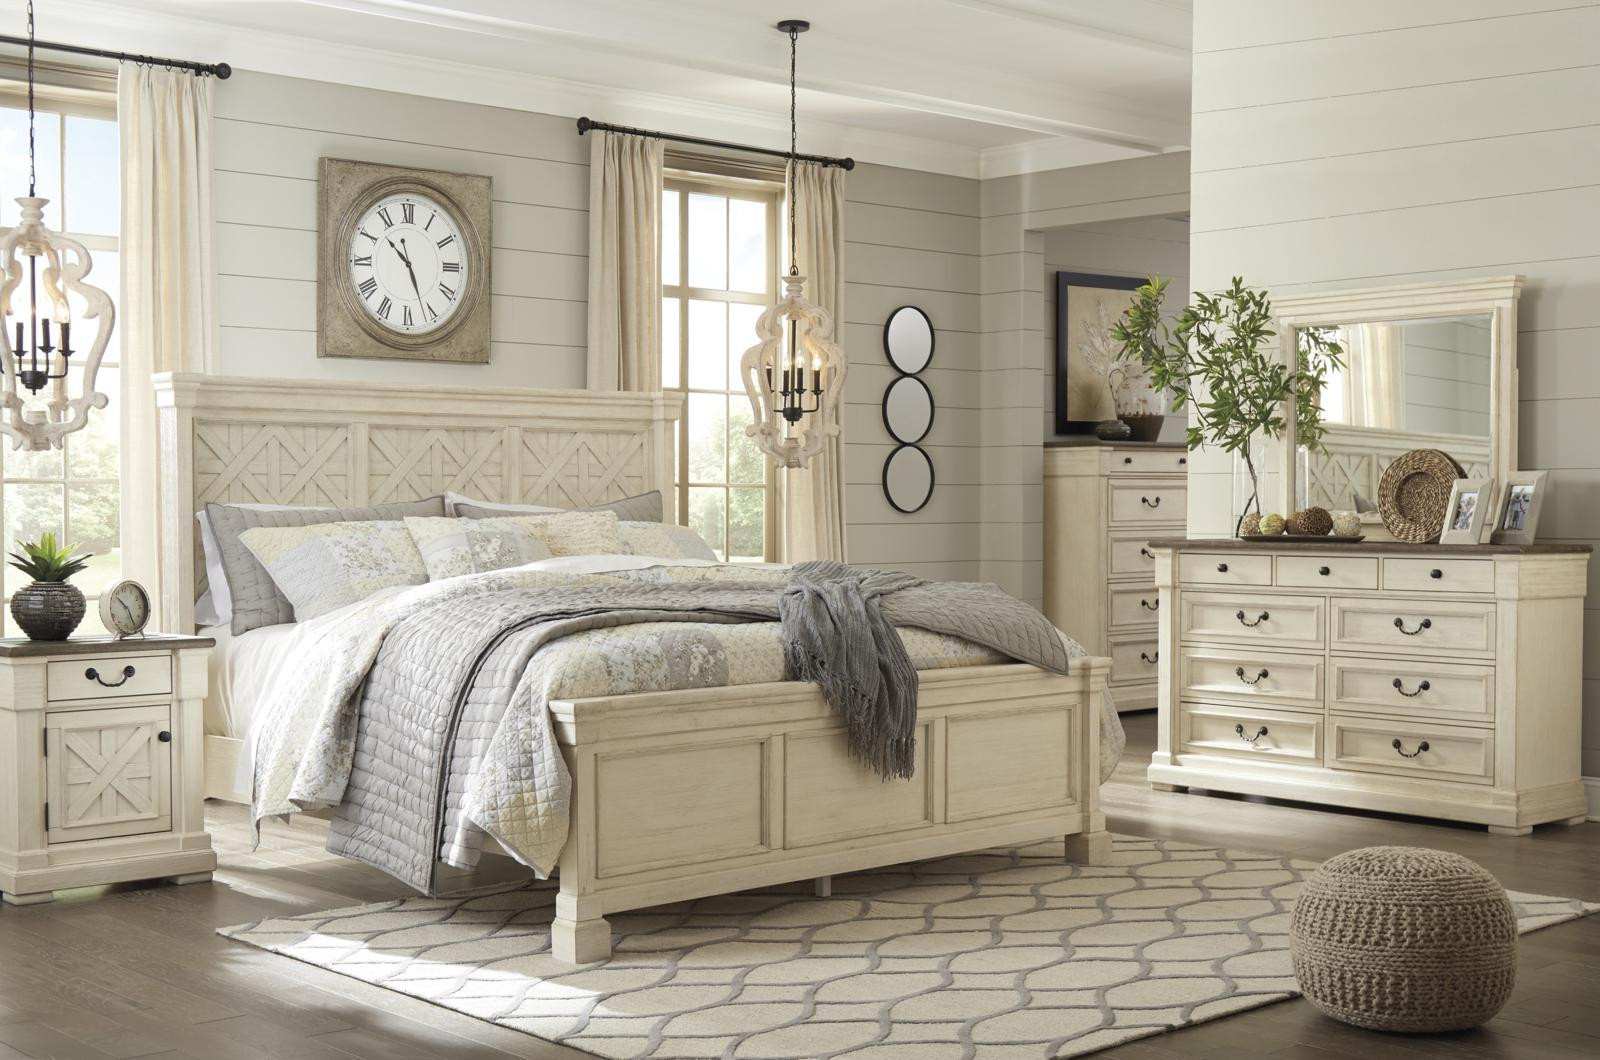 Best ideas about Bedroom Furniture Discounts . Save or Pin Bolanburg 4 Piece Panel Bedroom Set Now.